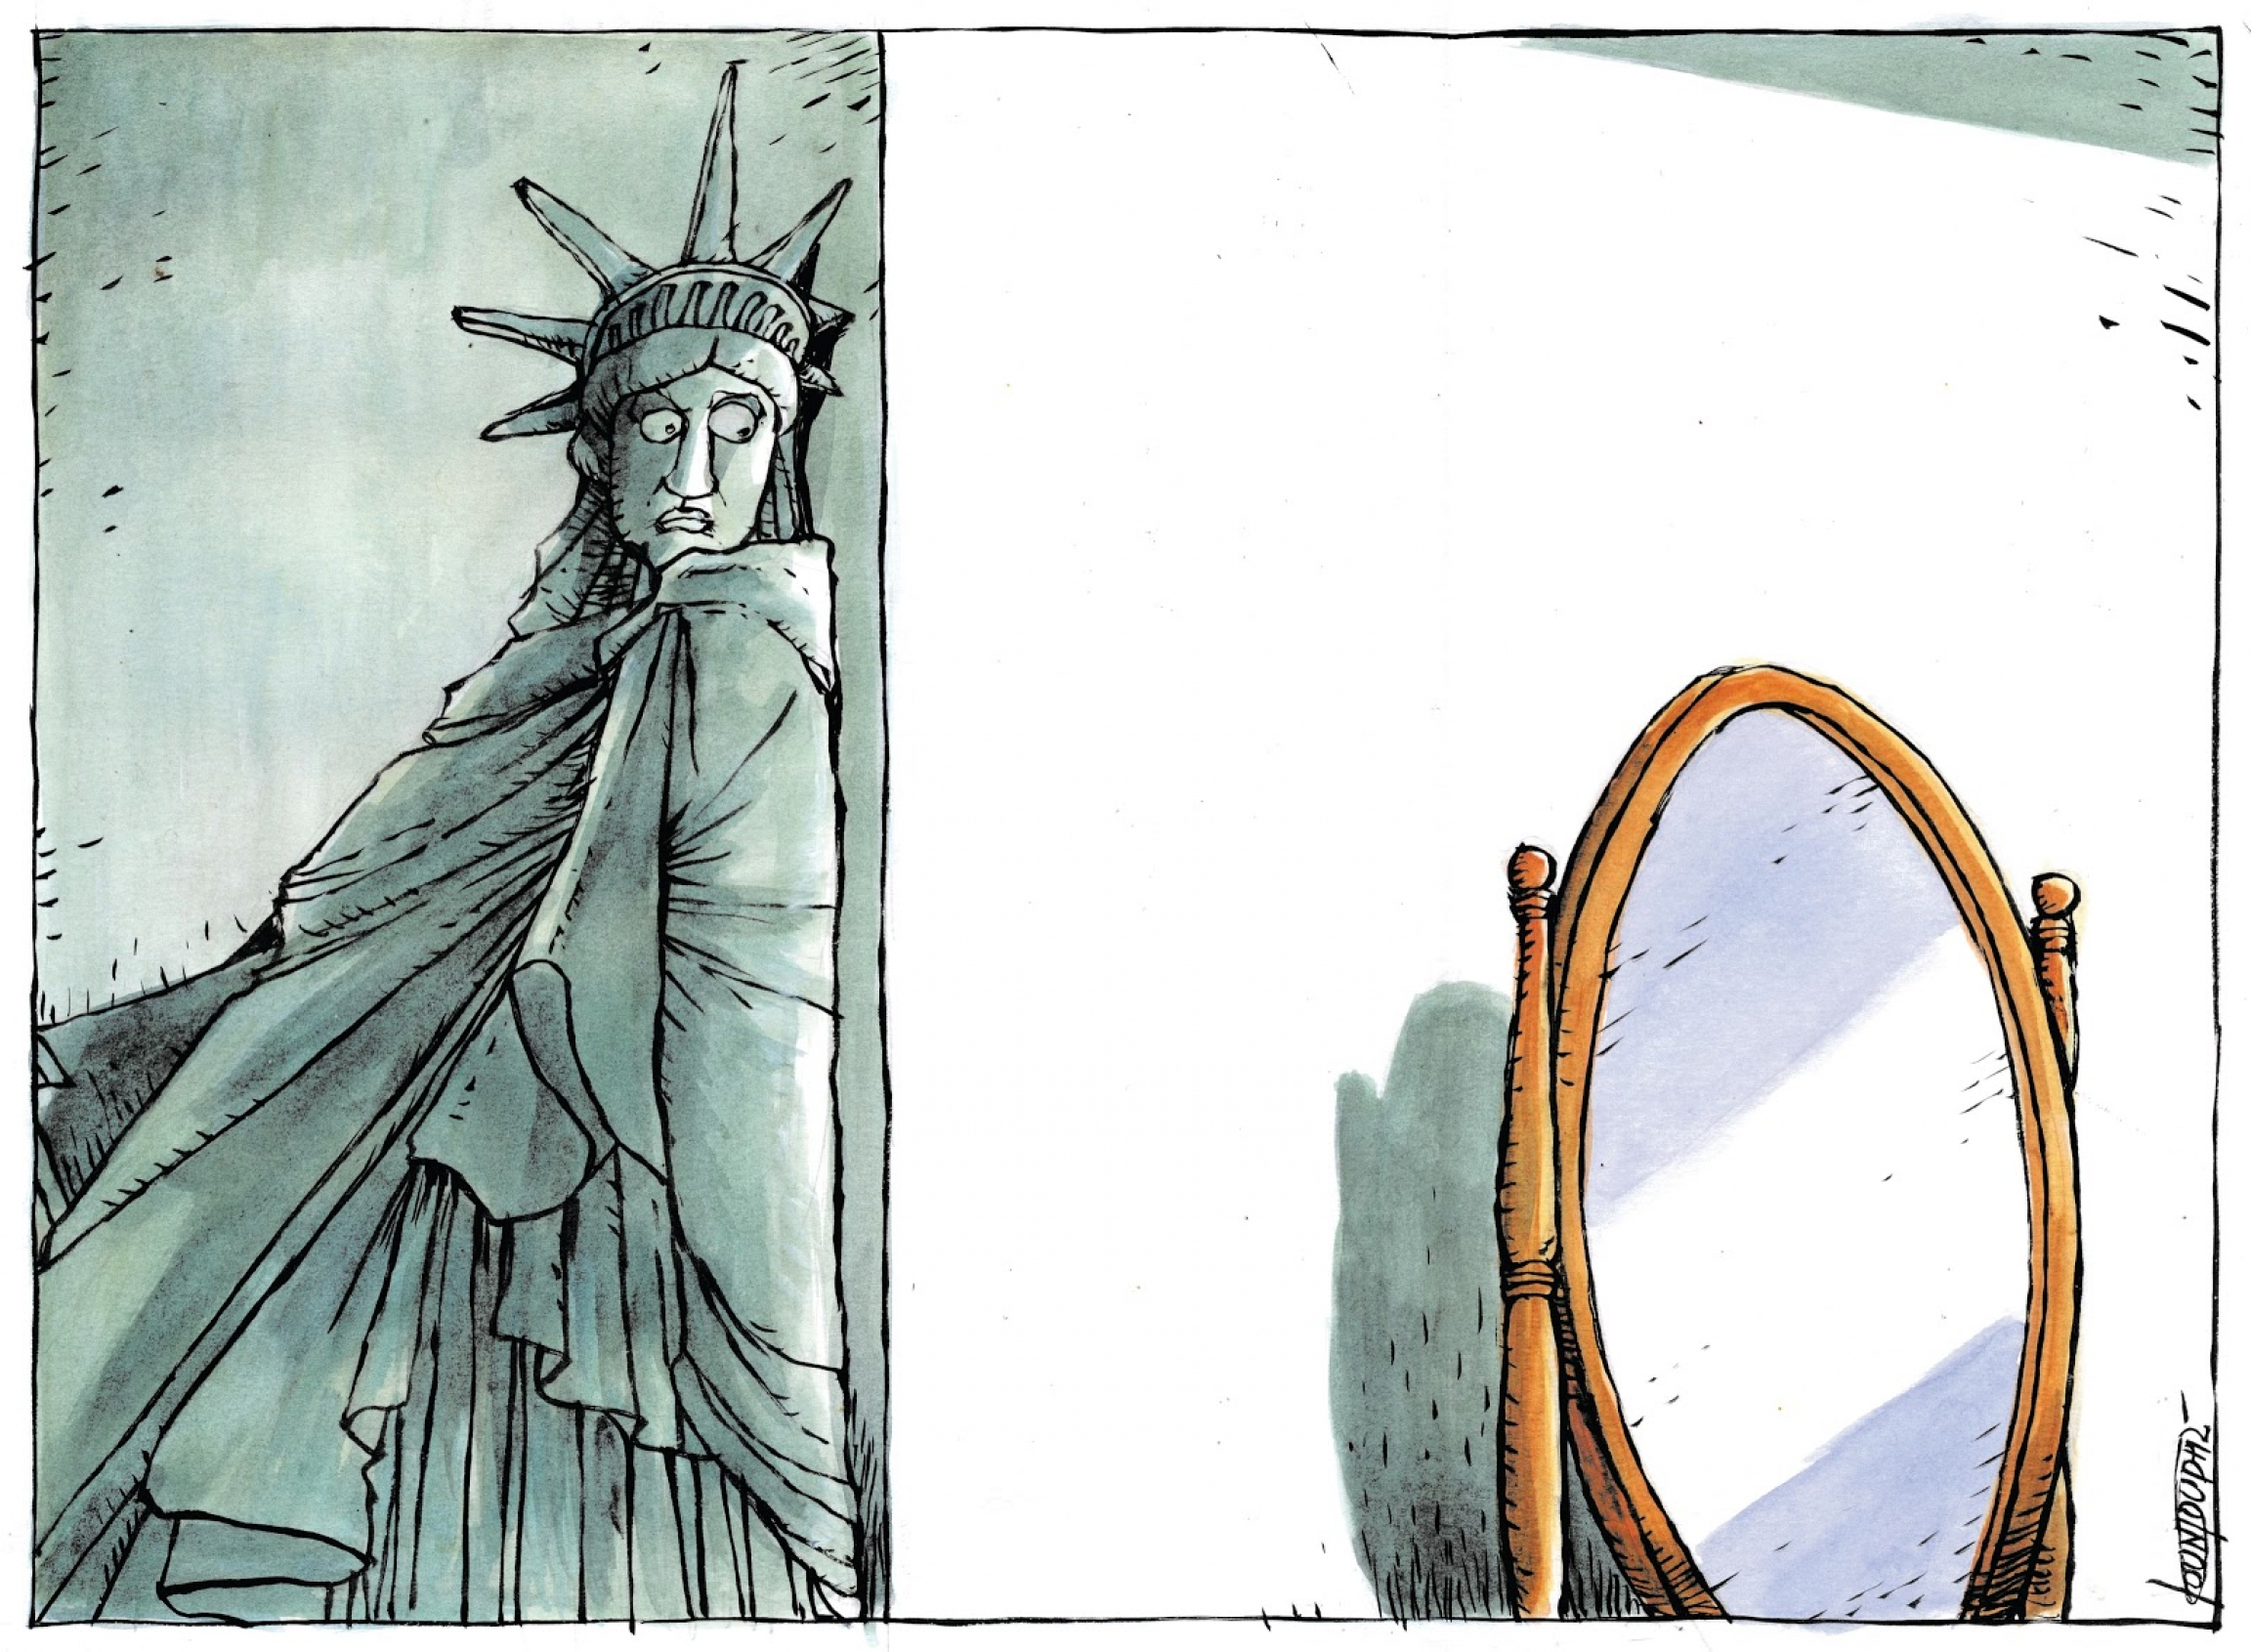 Statue of liberty is afraid to look in the mirror